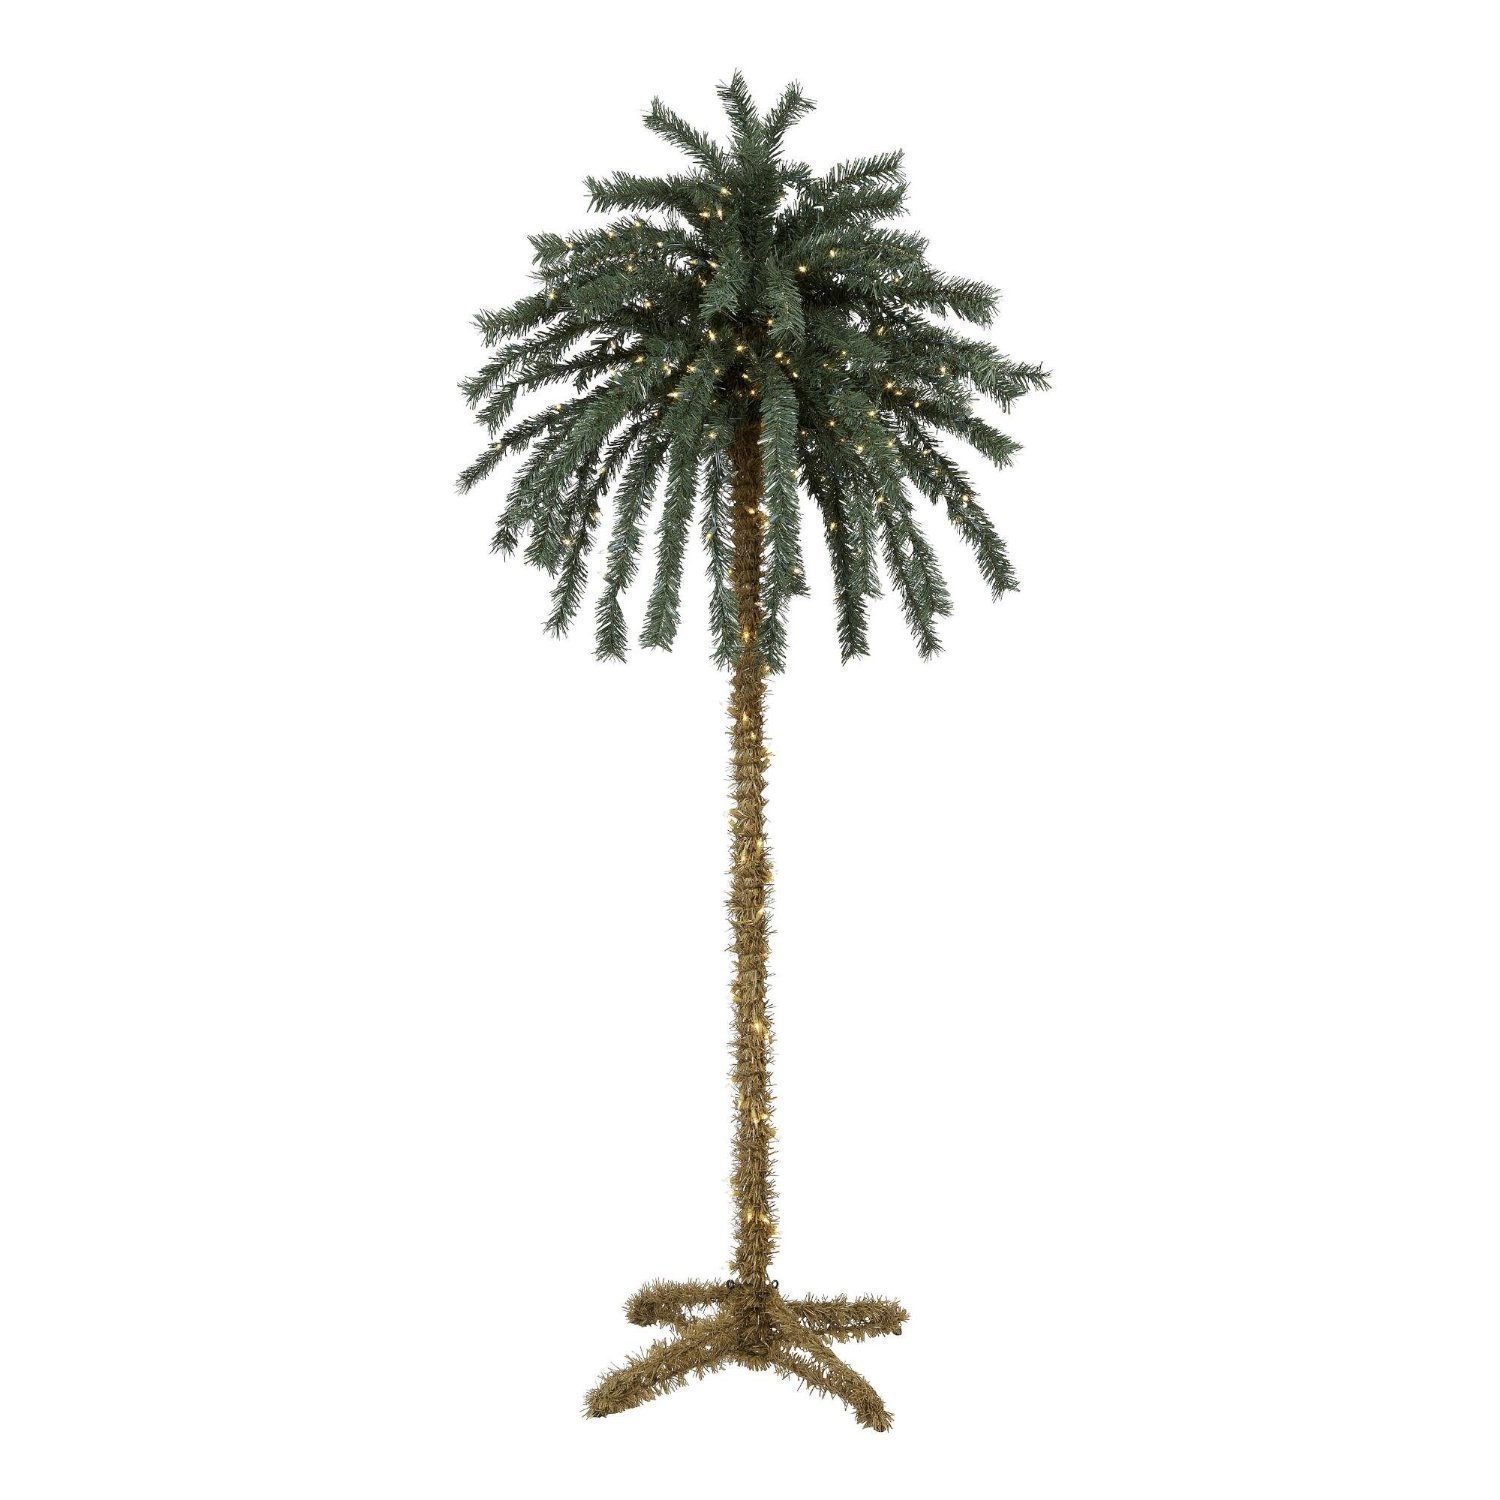 7 Foot Lighted -Christmas- Palm Tree - 300 Lights 78 Tips - Indoor / Outdoor